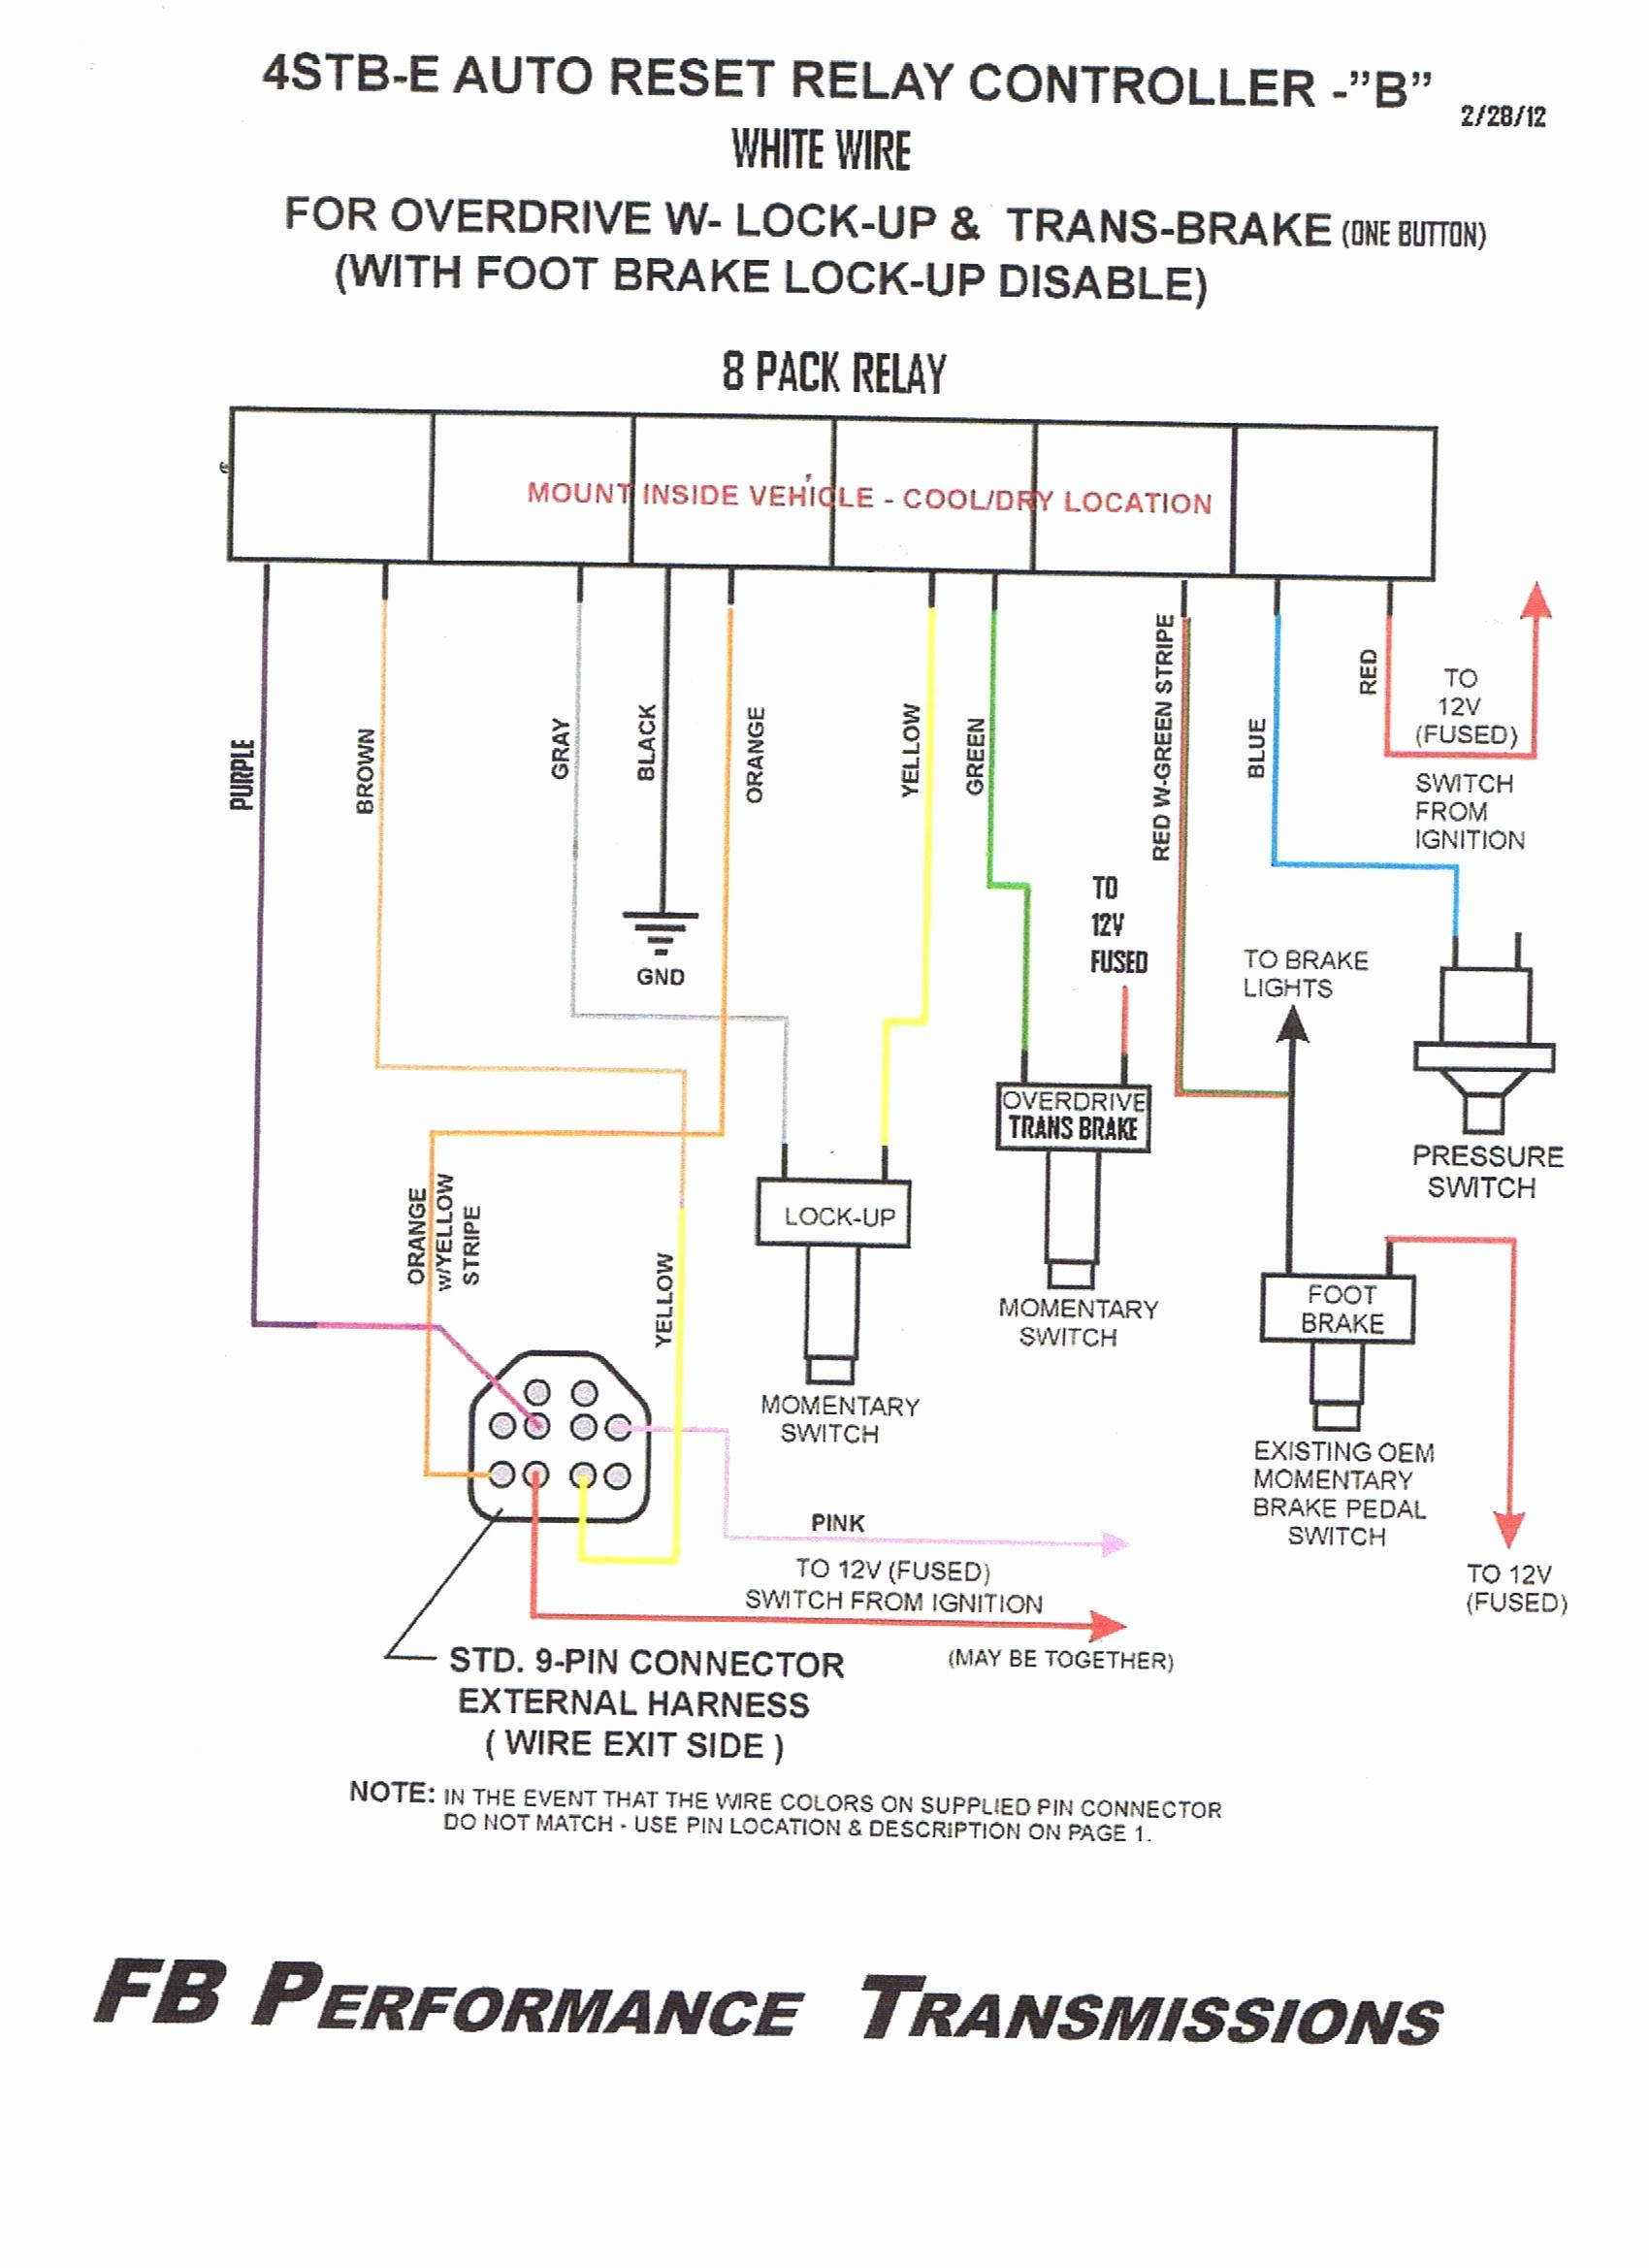 60 Inspirational Wiring Diagram For Light Fixture Pictures - Usb Headset 00Aa001 Wiring Diagram